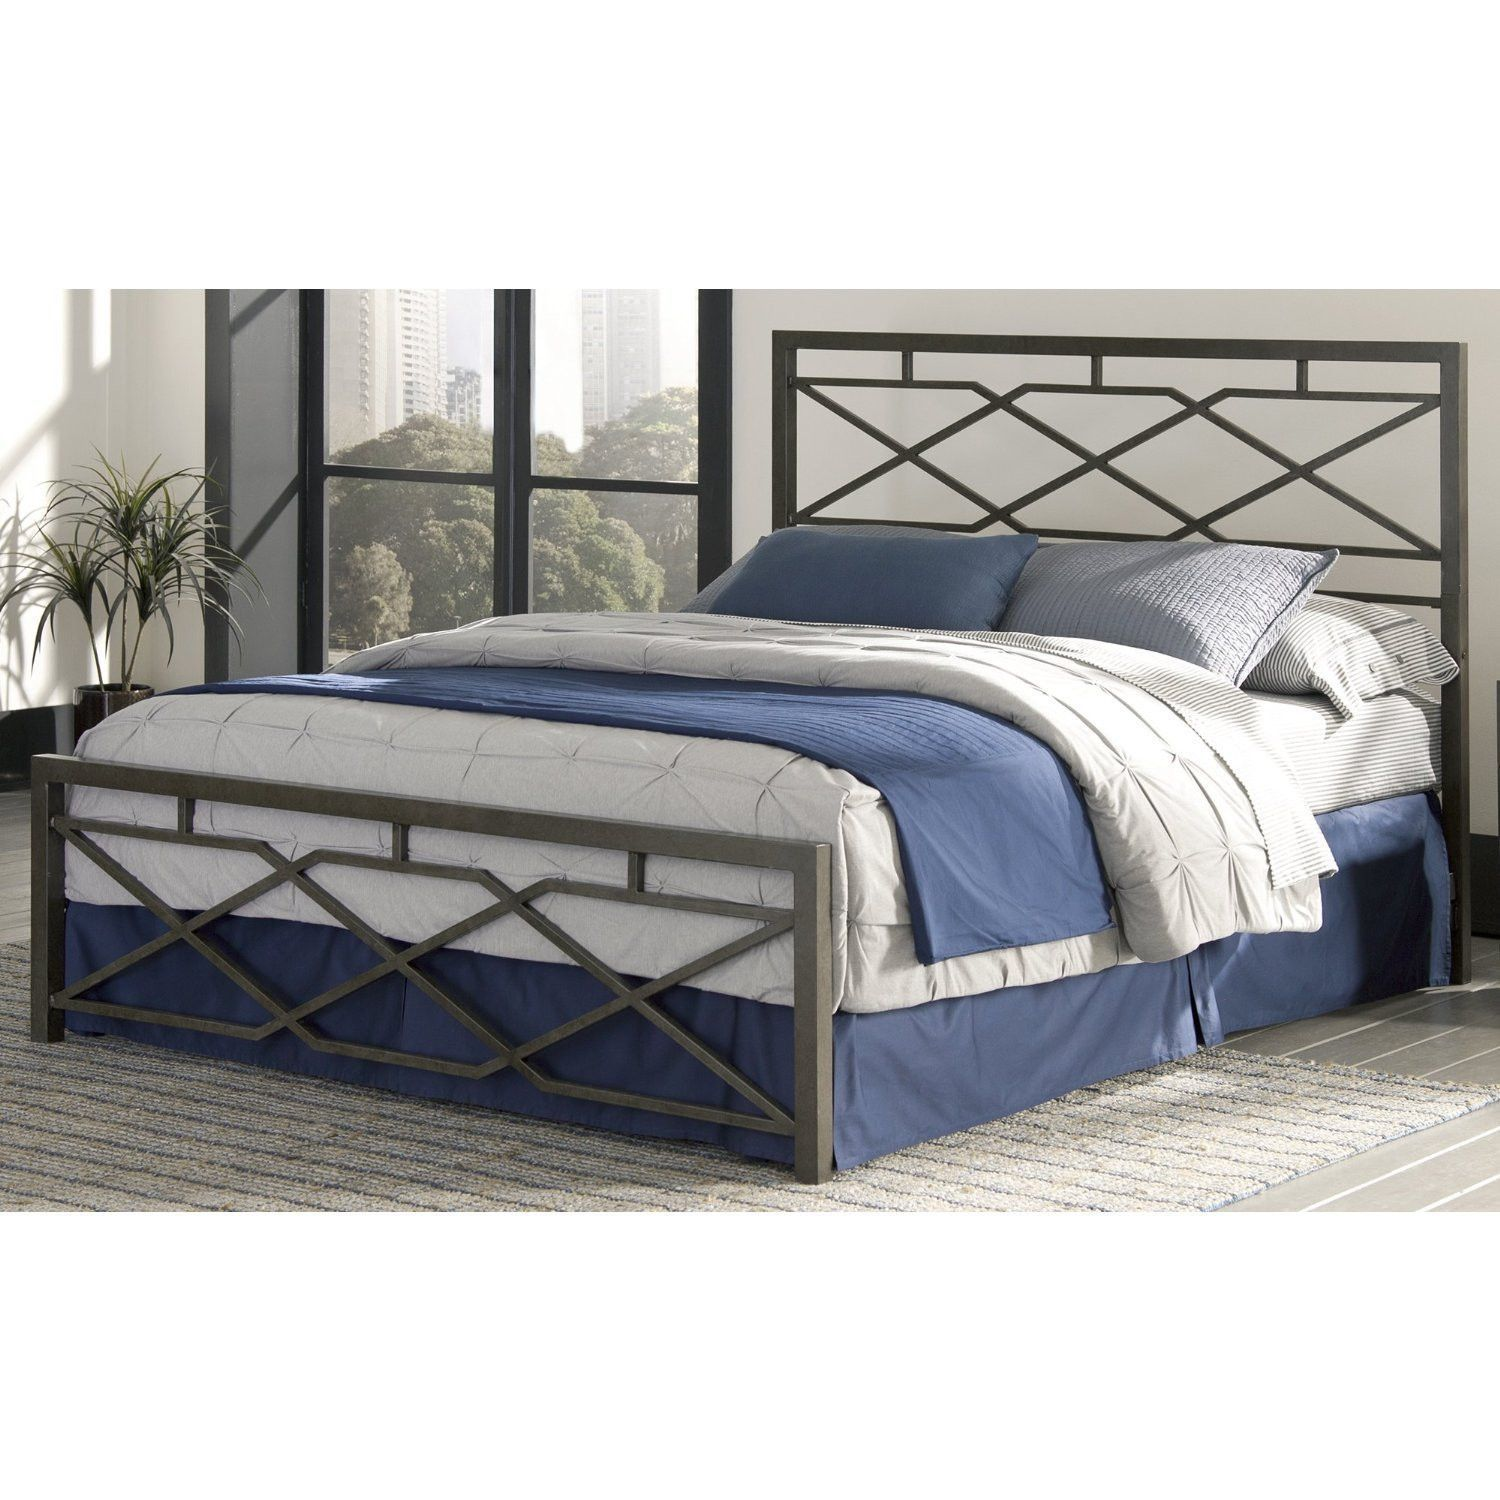 Bed Frame Carbon Steel Folding Bed Frame Available In Queen